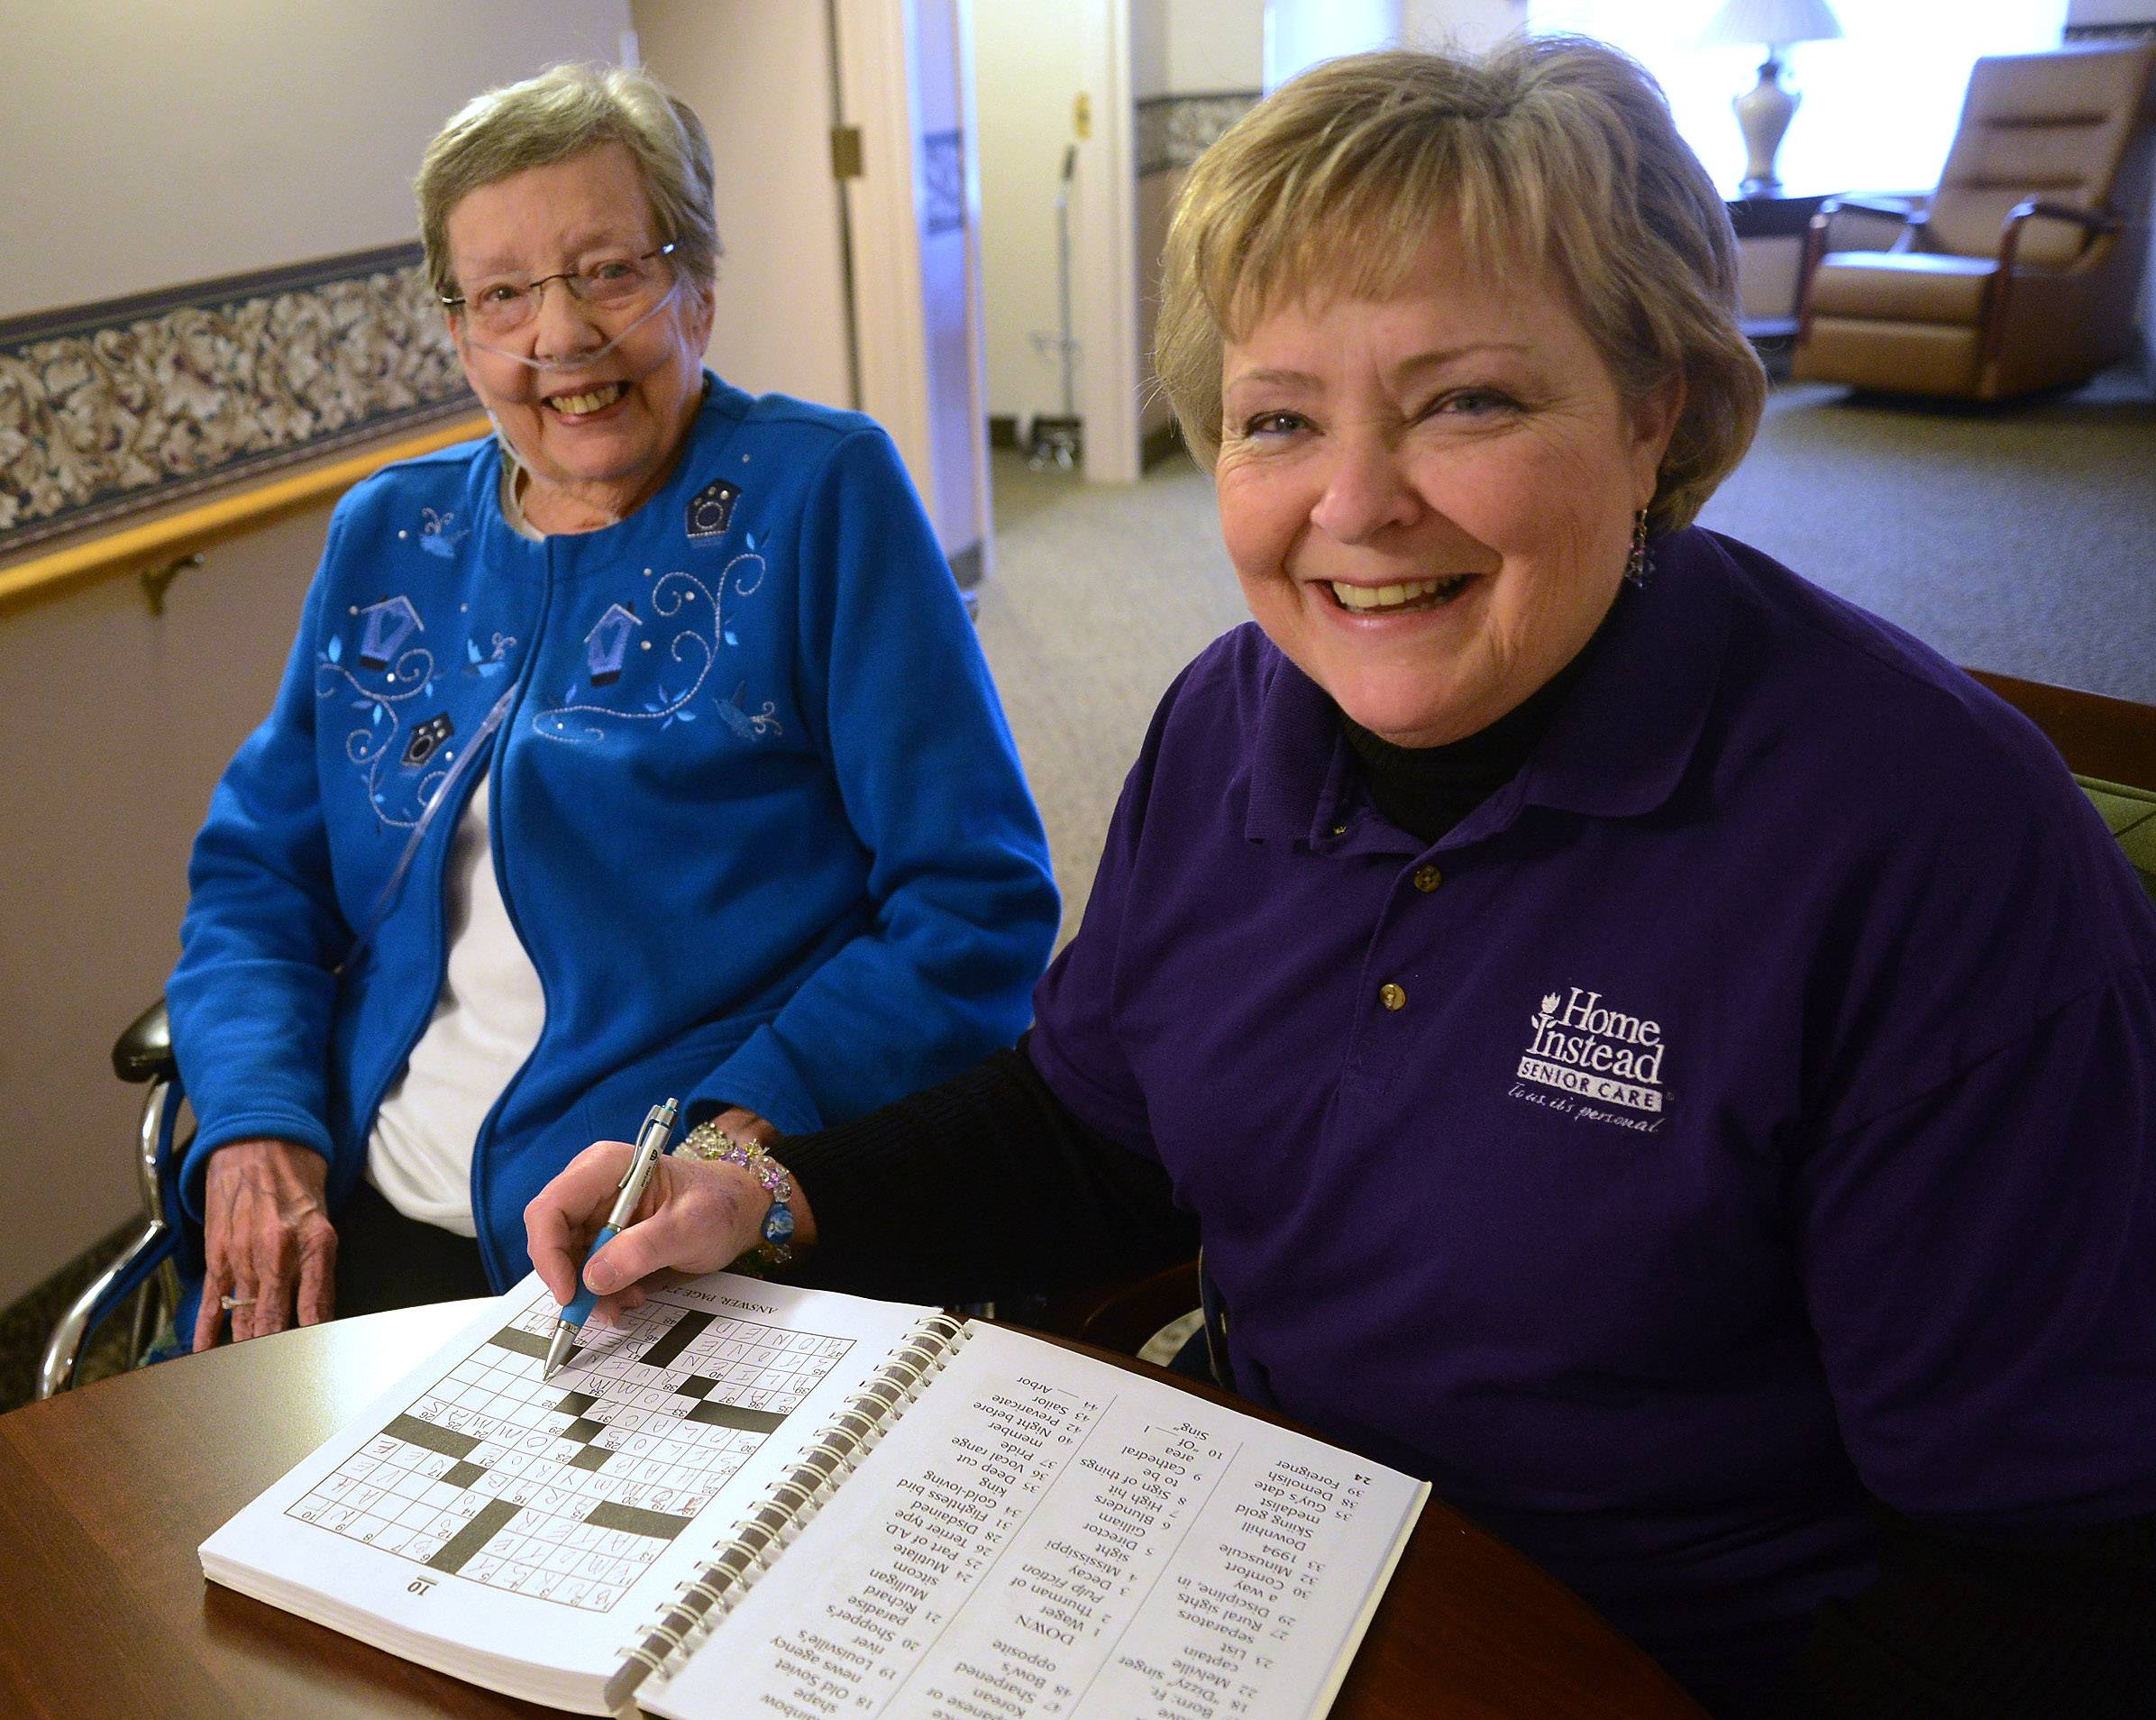 Caregiver Terrie Thompson, right, works a crossword puzzle with client Ann Stillwaugh.